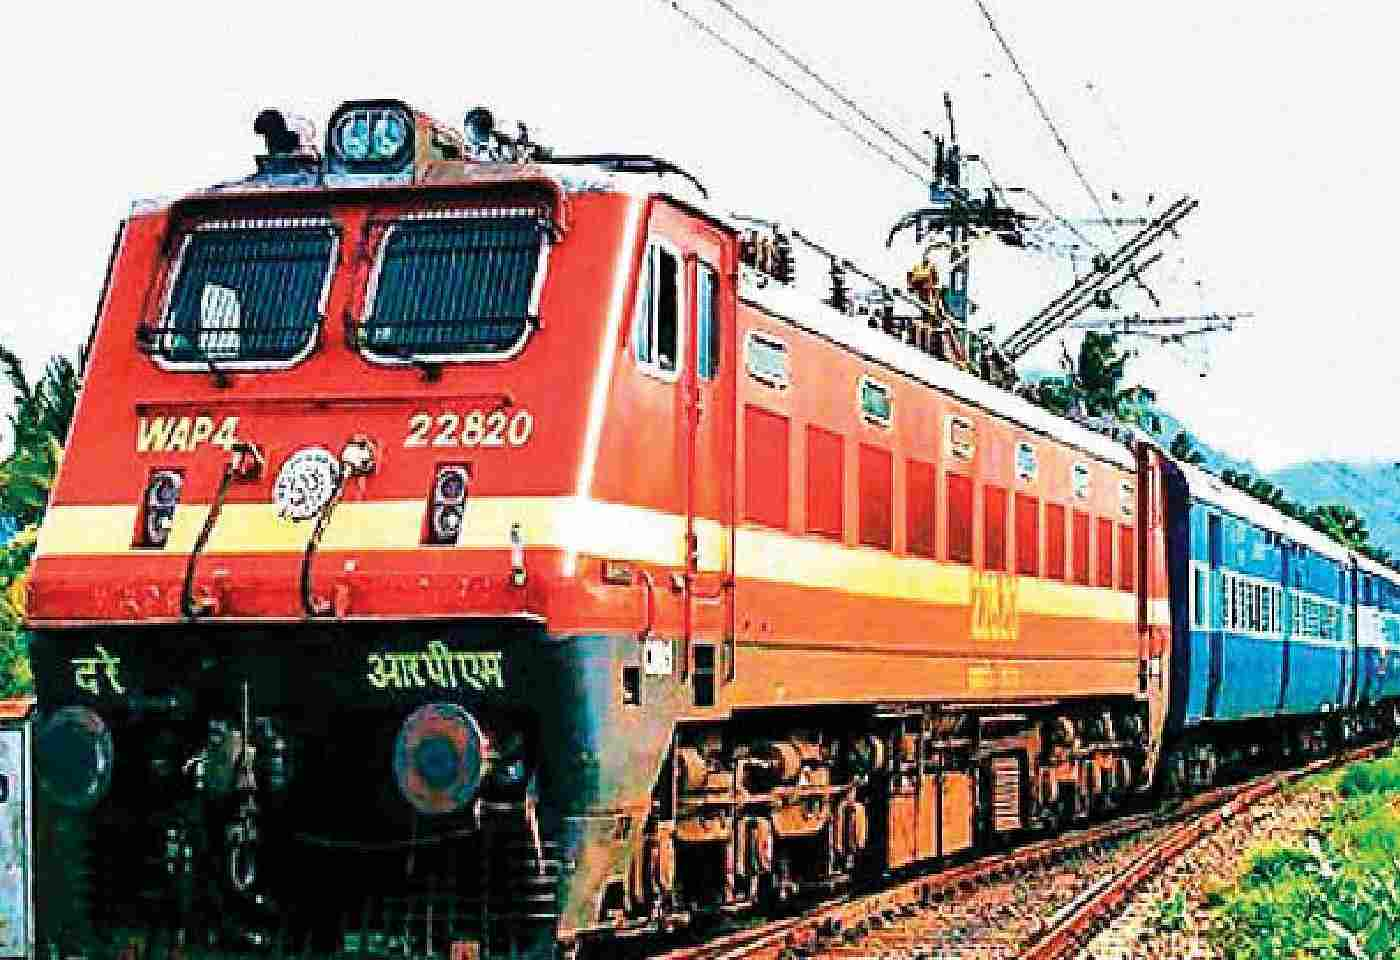 Indian Railway Recruitment on 3591 posts For 10th Pass, Know How to Apply For Govt Job